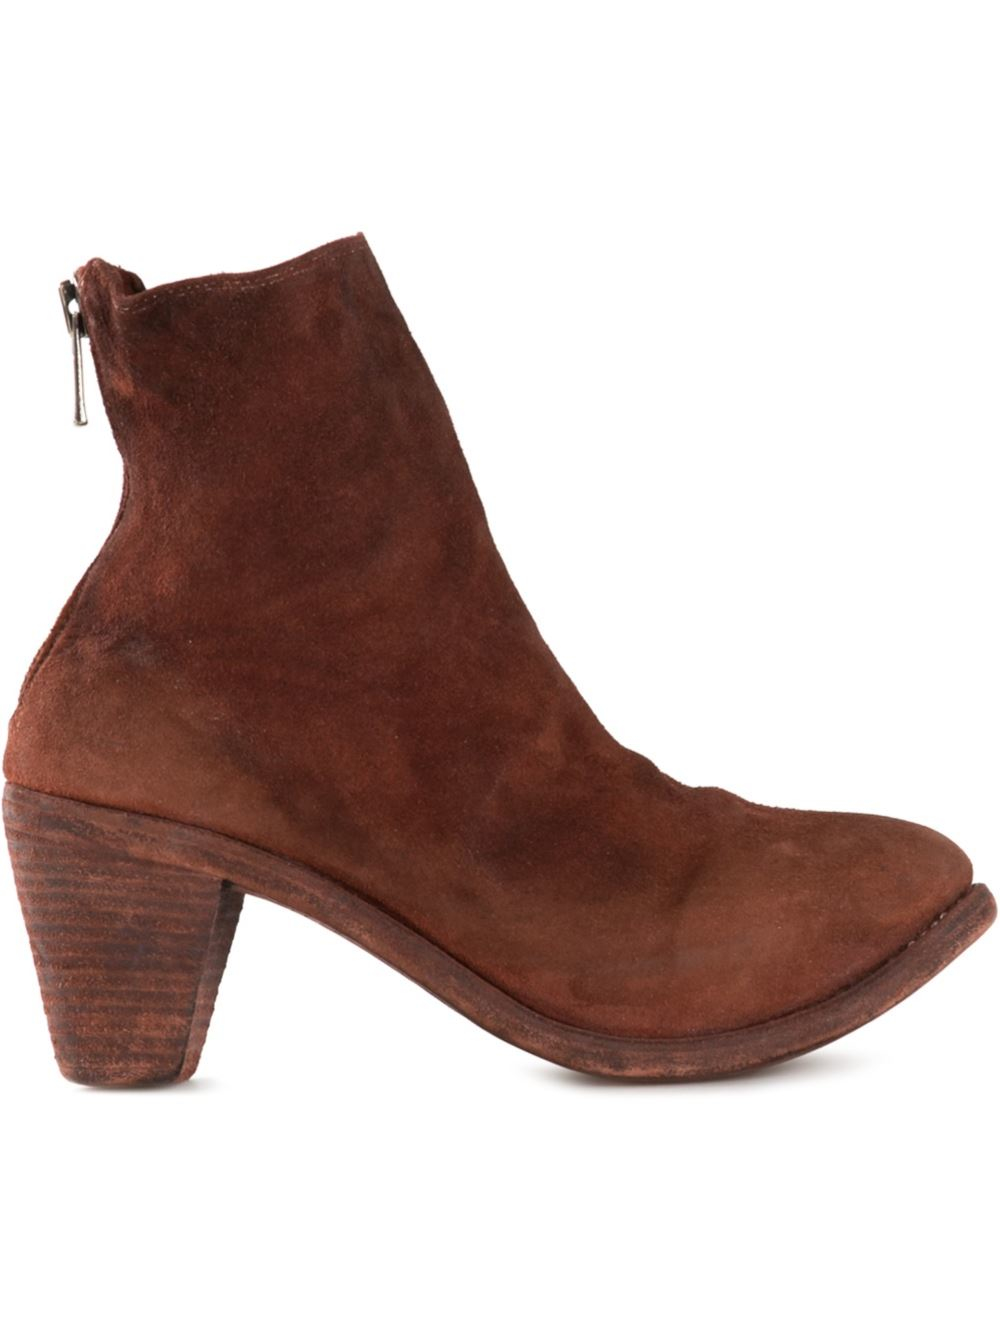 Excellent From Shorter Ankle Boot Styles To Sparkly Slippers  This Look Adds A Satin Bow To The Back Of The Boot Ugg Kasen The Dres